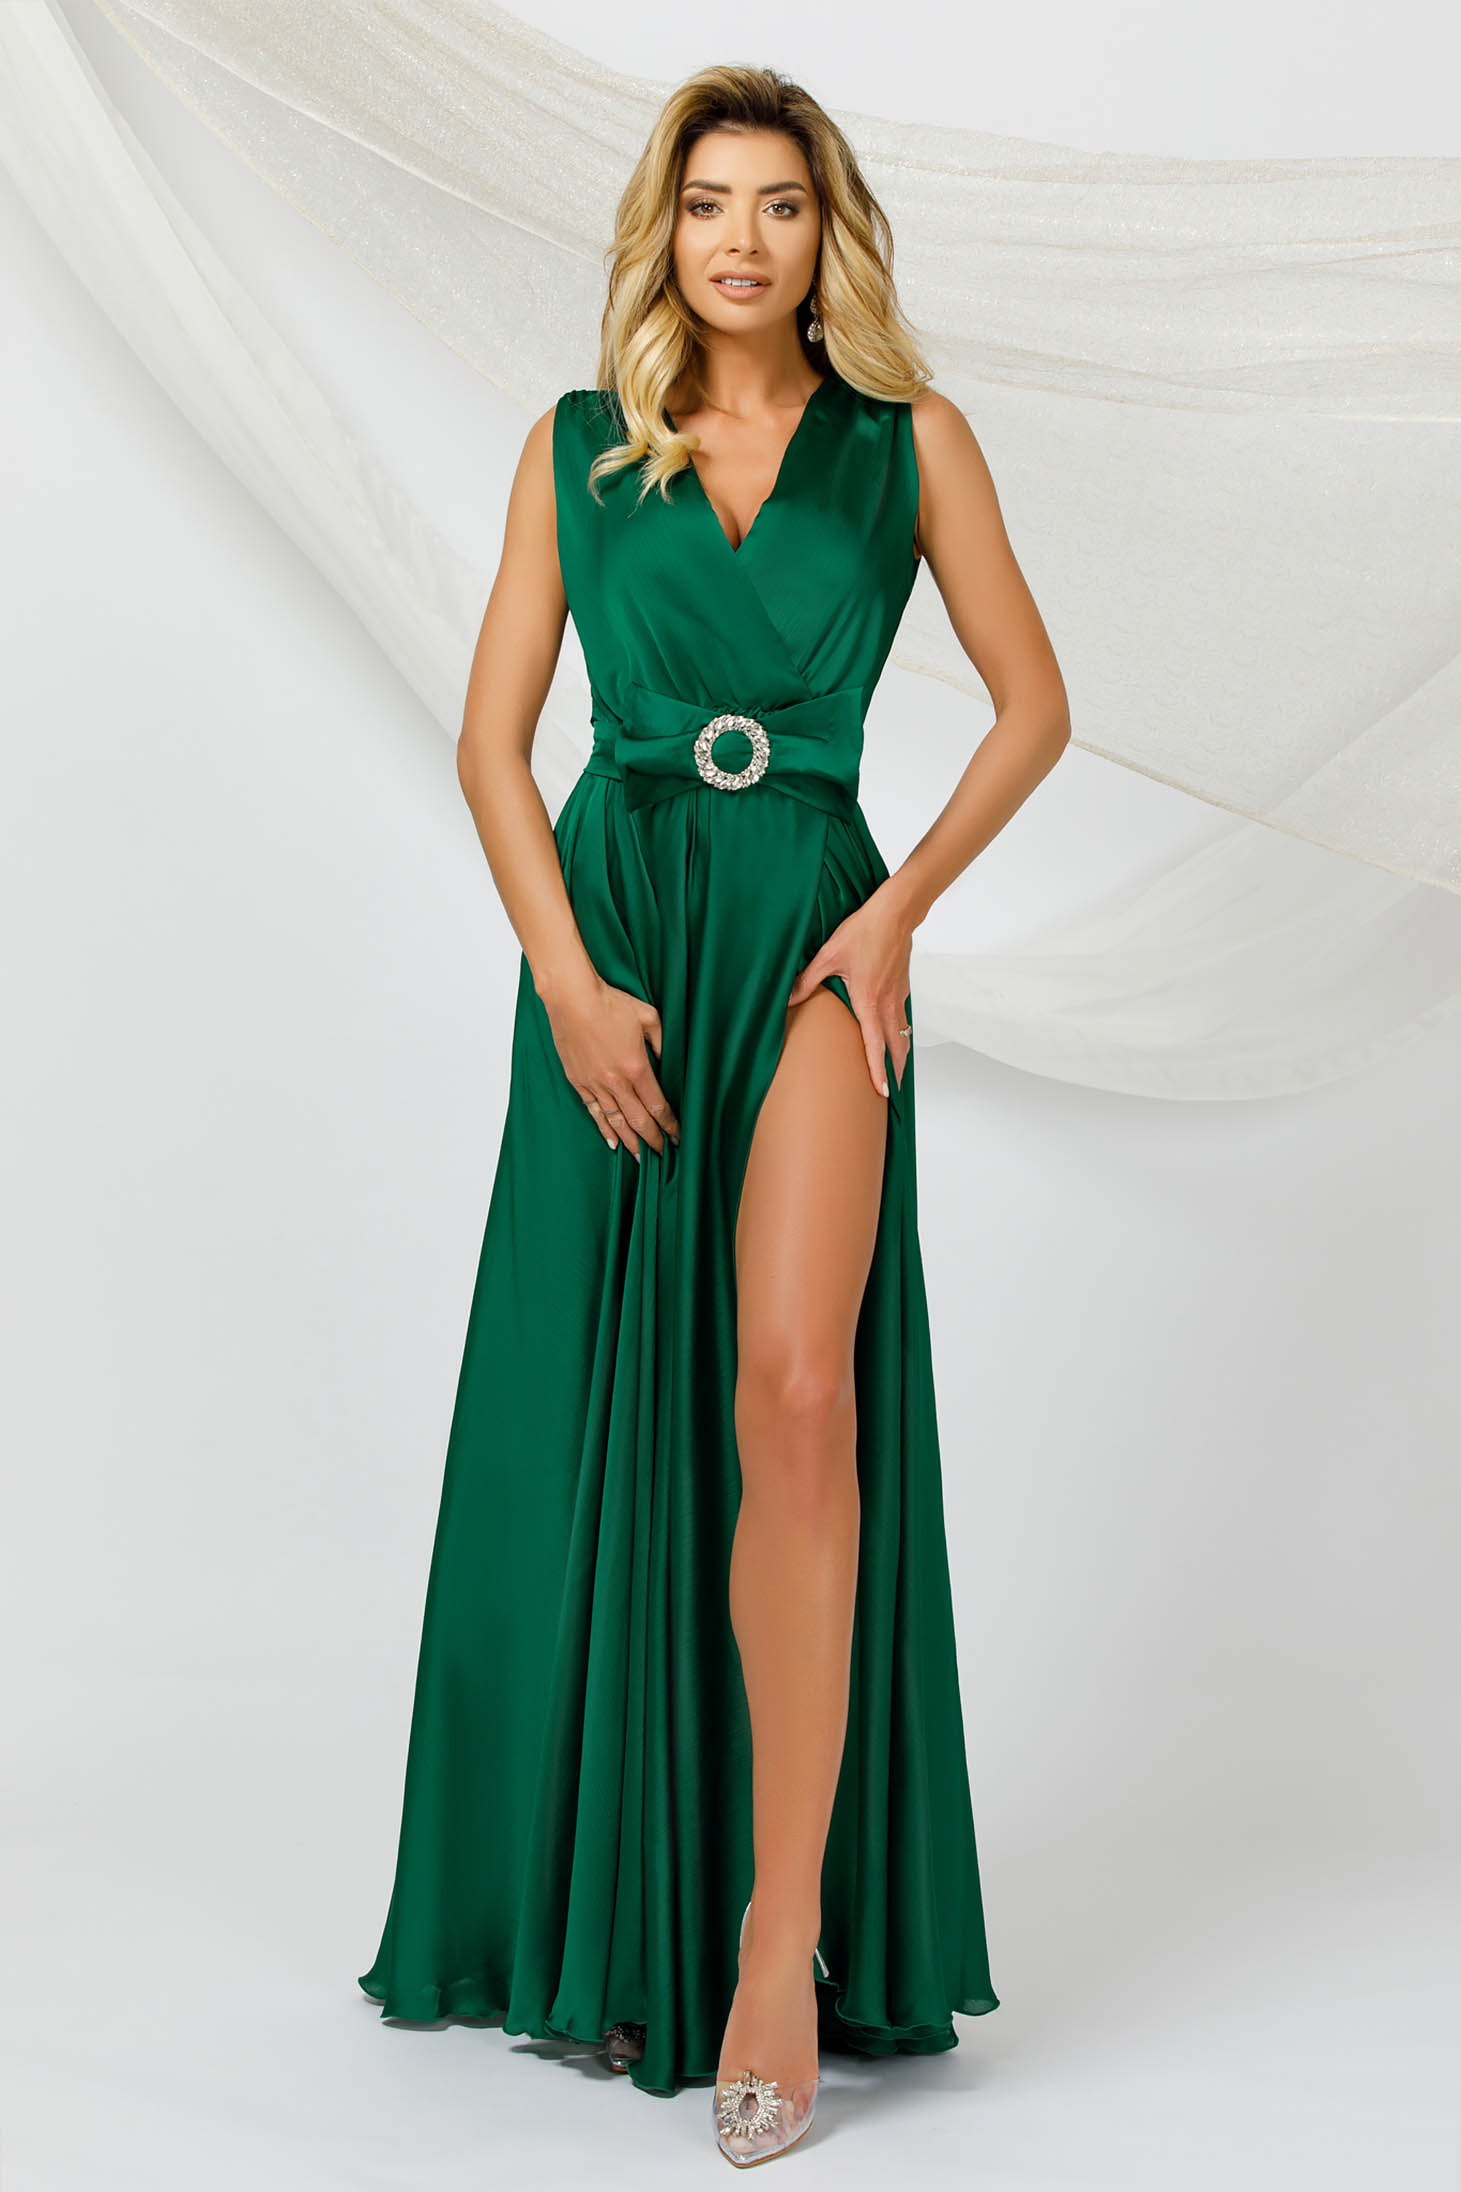 Green dress long cloche from veil fabric from satin fabric texture sleeveless occasional